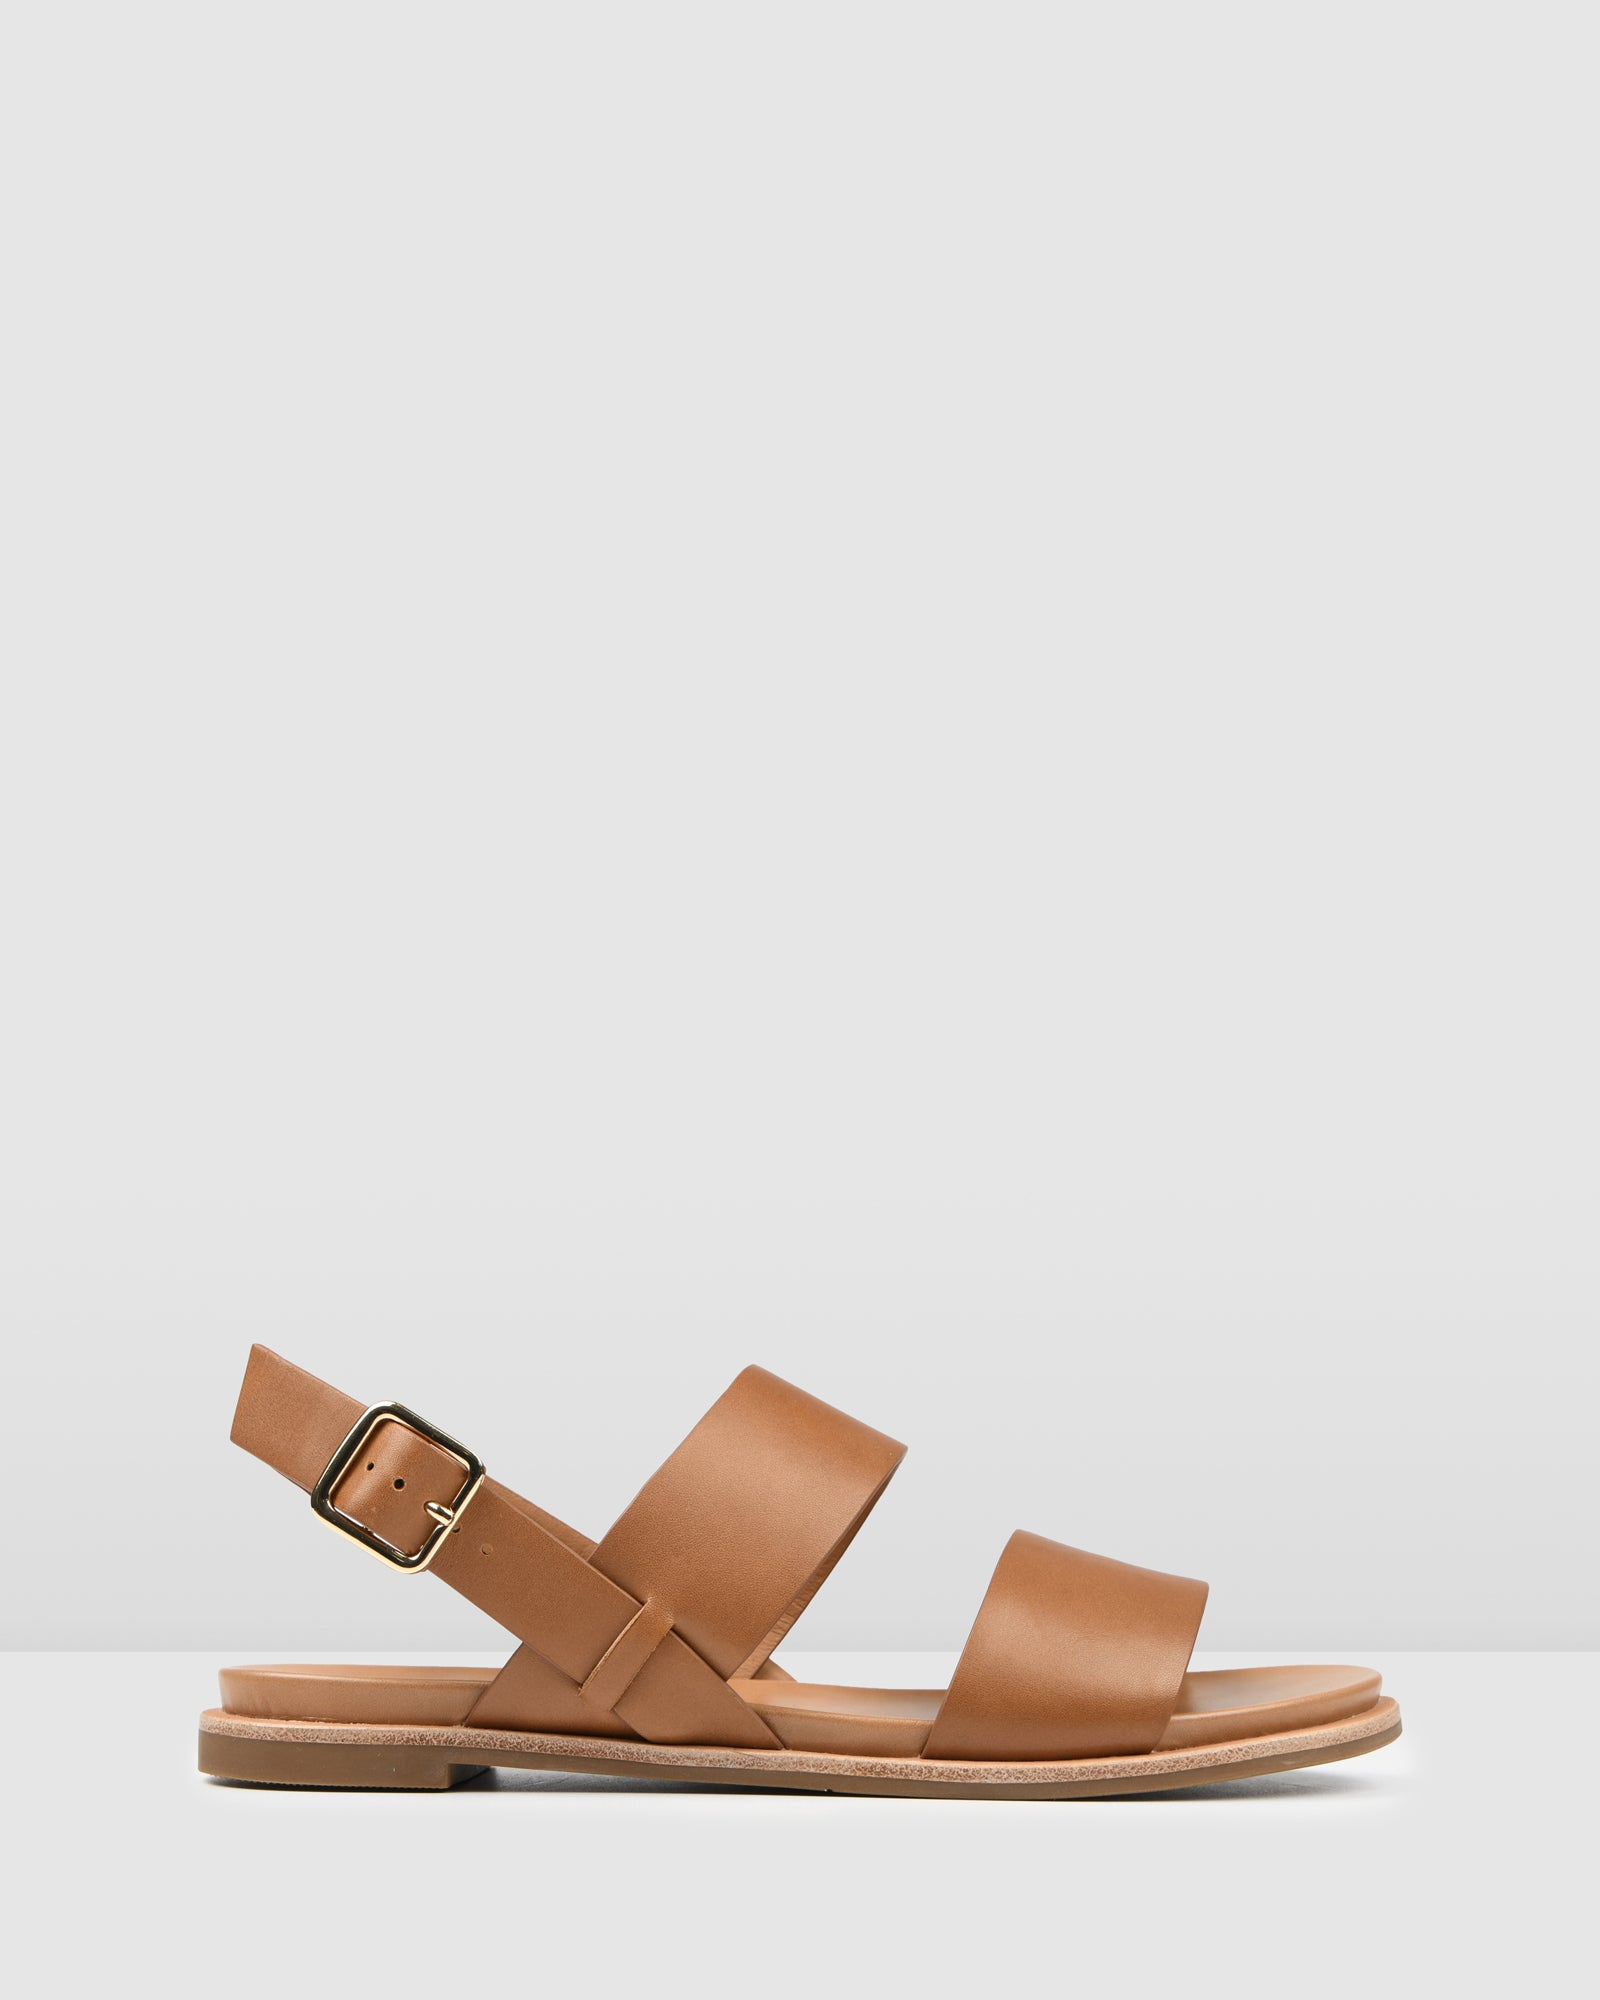 BRYDIE FLAT SANDALS TAN LEATHER